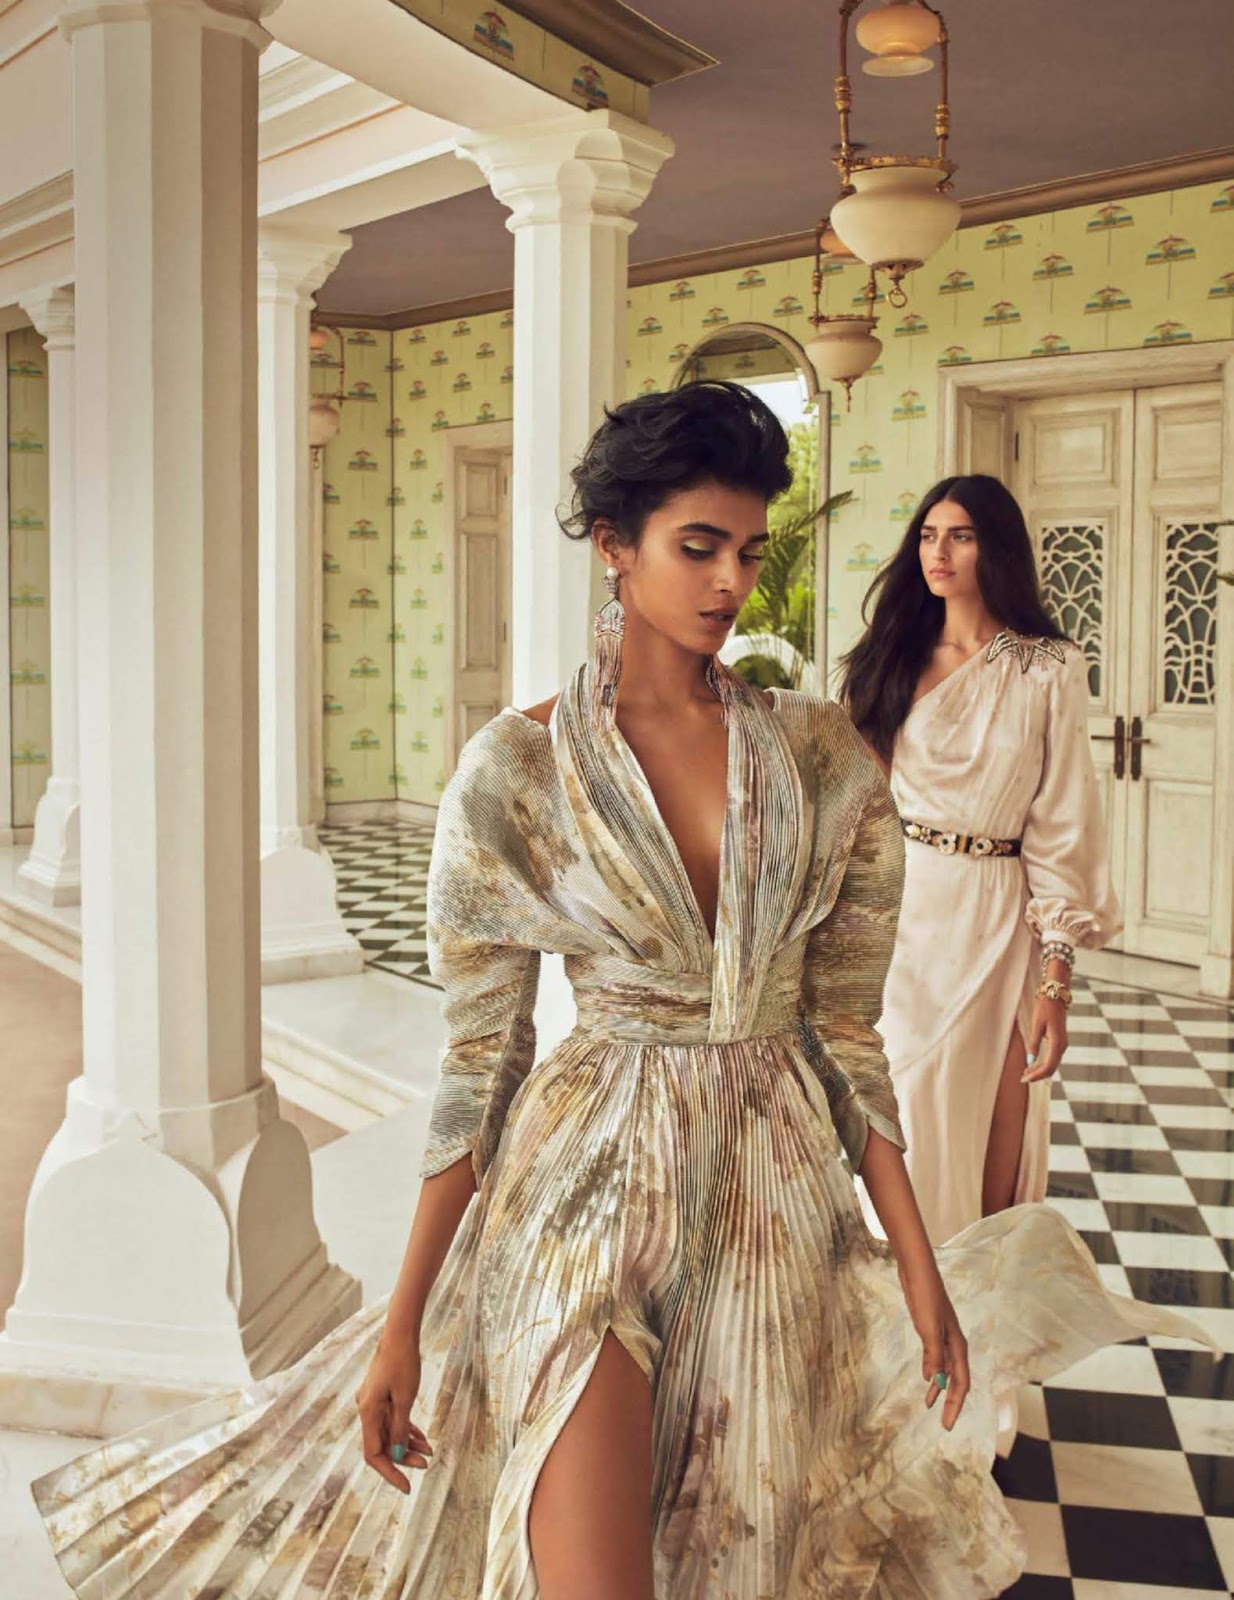 Saffron Vadher & Radhika Nair for Vogue India by Greg Swales.